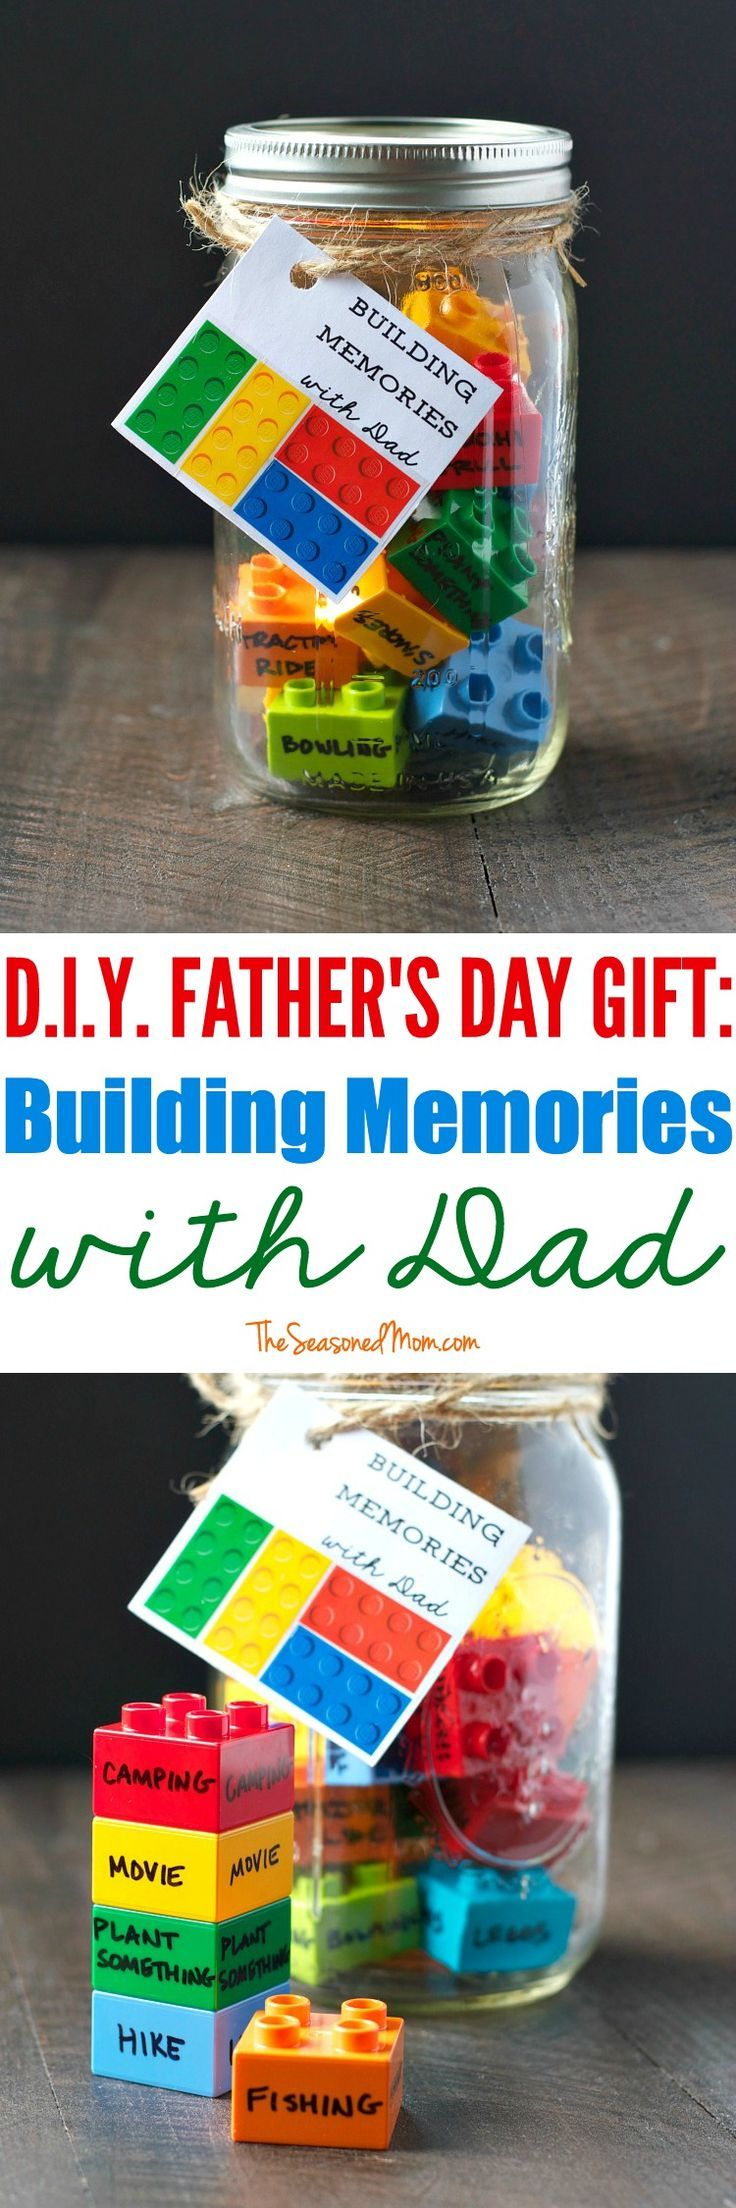 diy father's day gift: building memories with dad | summer